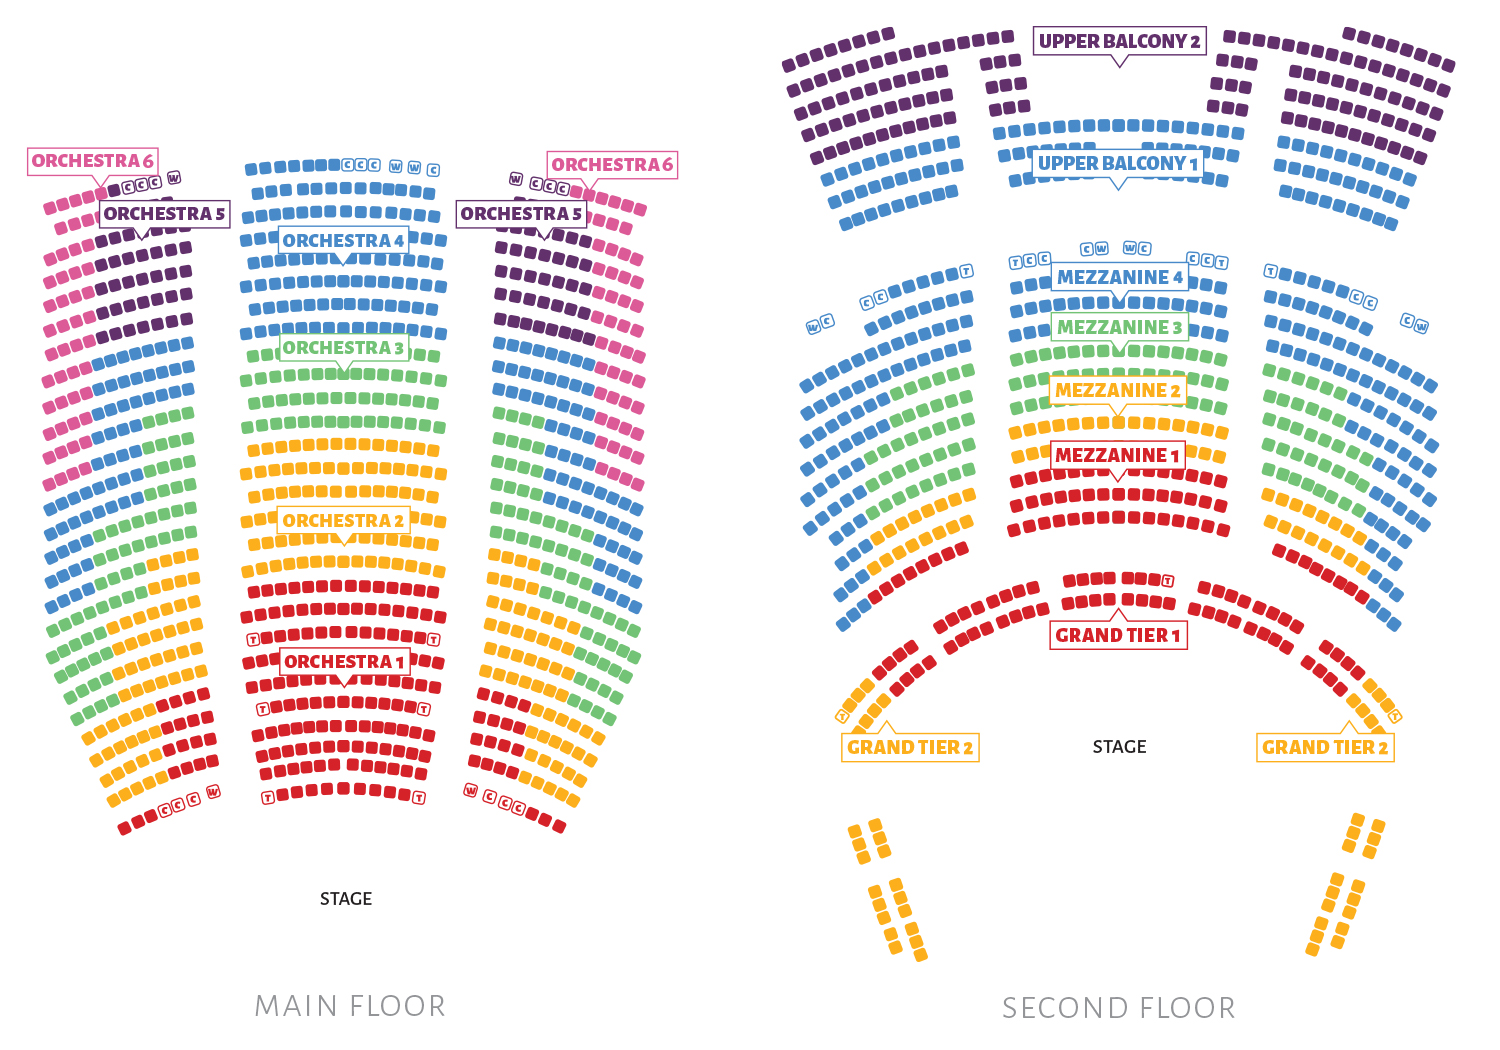 Capitol Theater Seating Chart Brokeasshomecom